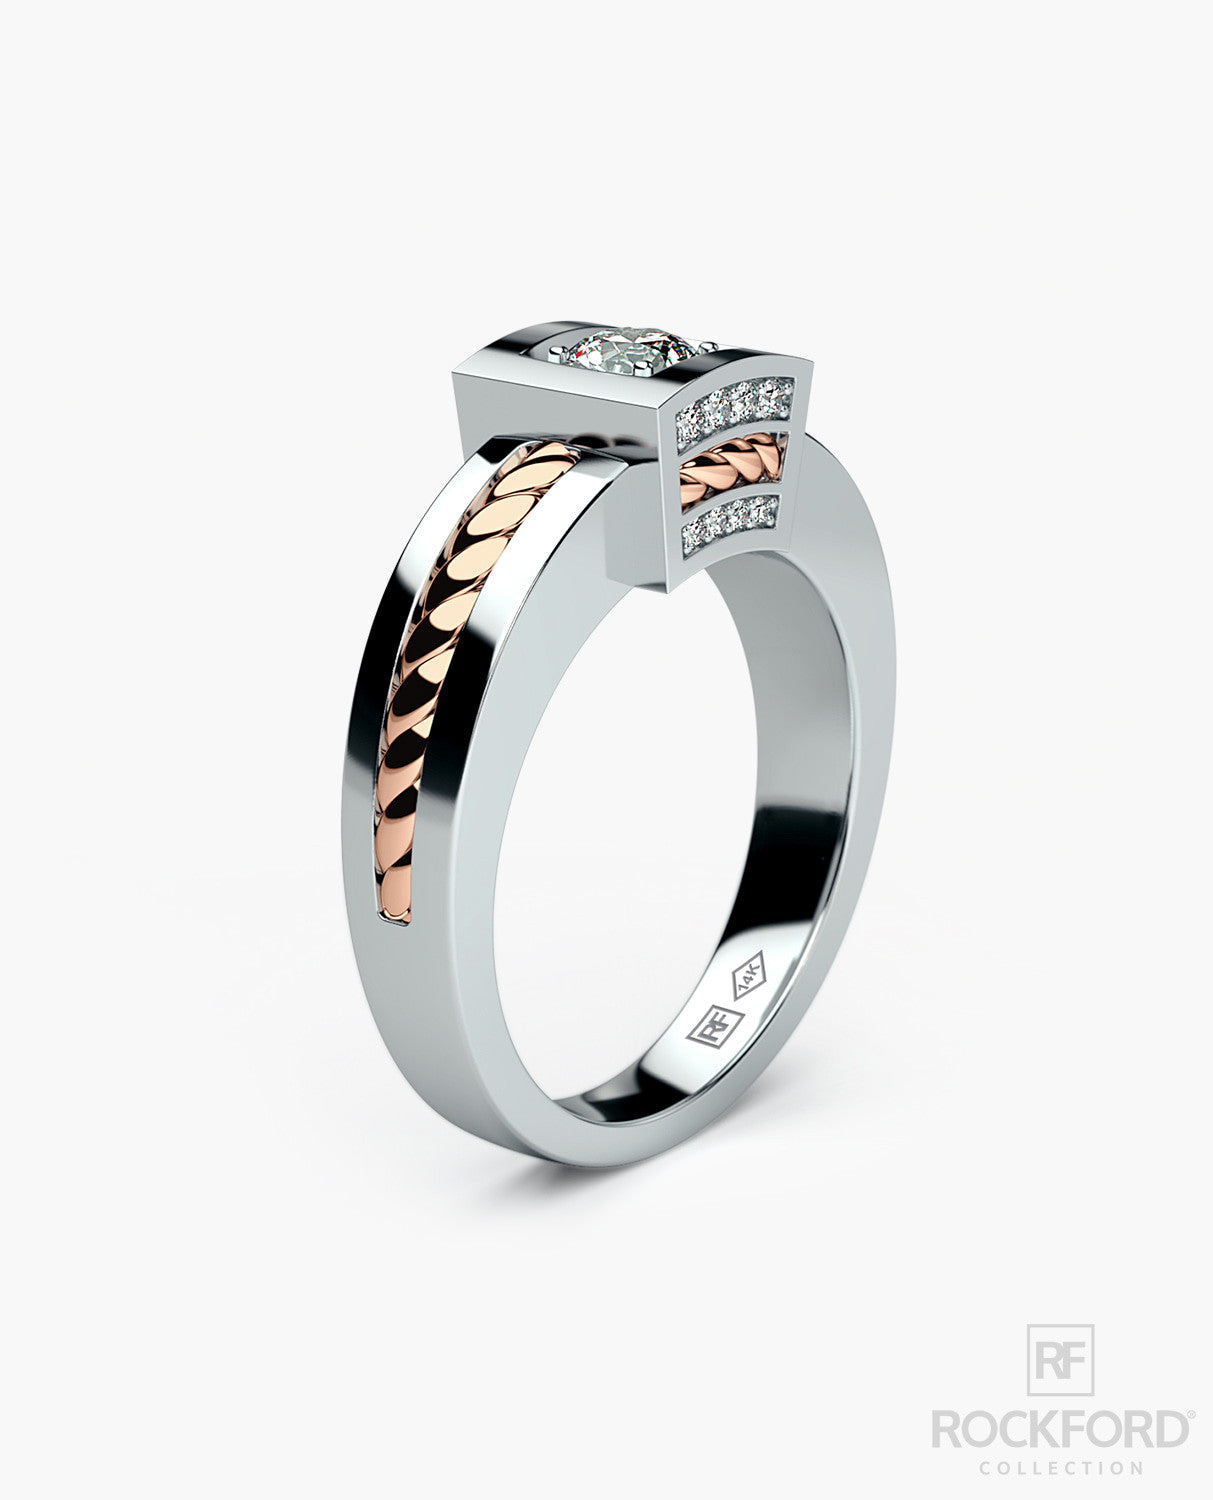 VULTURE Mens Two-Tone Gold Wedding Ring with 0.45 ct Diamonds